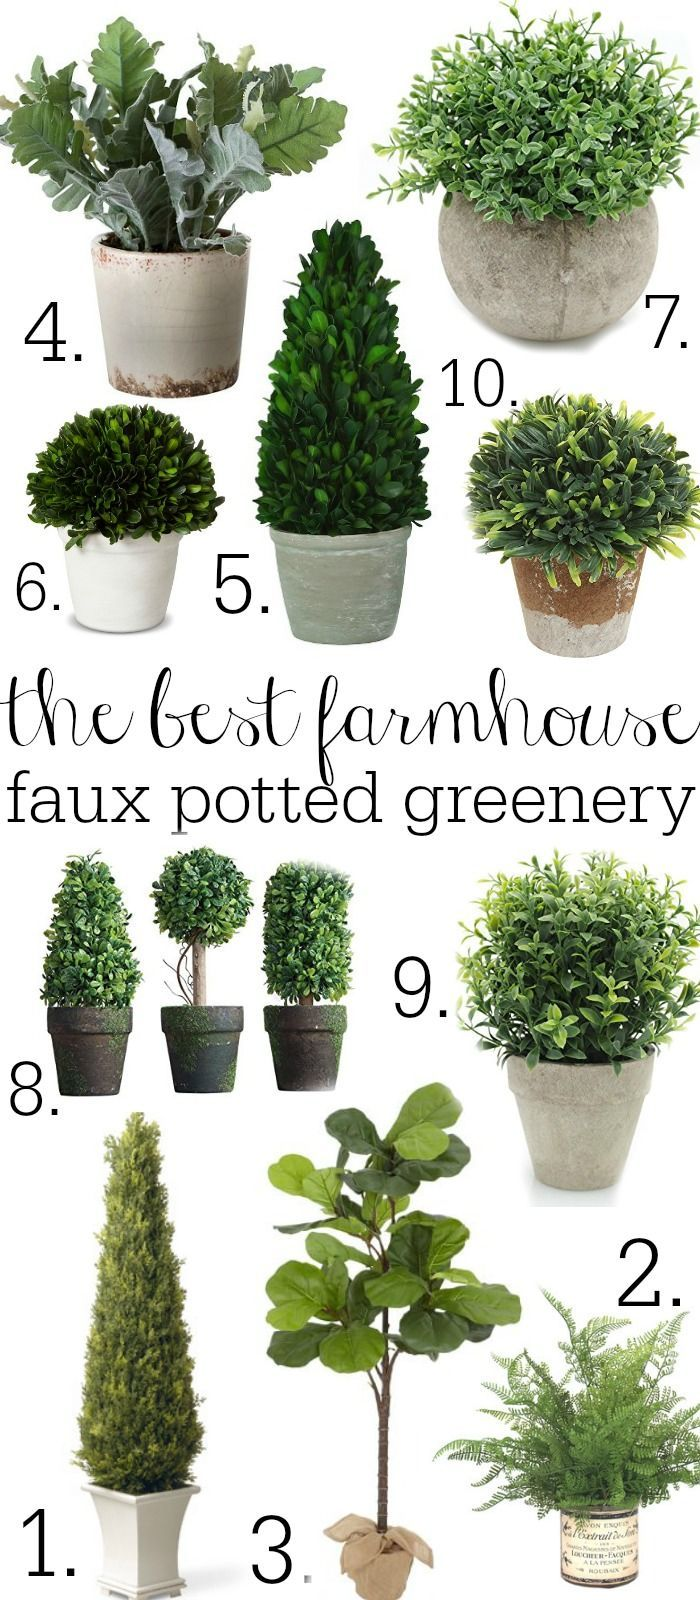 The Best farmhouse faux potted greenery - A great source for faux potted plants! A must pin!